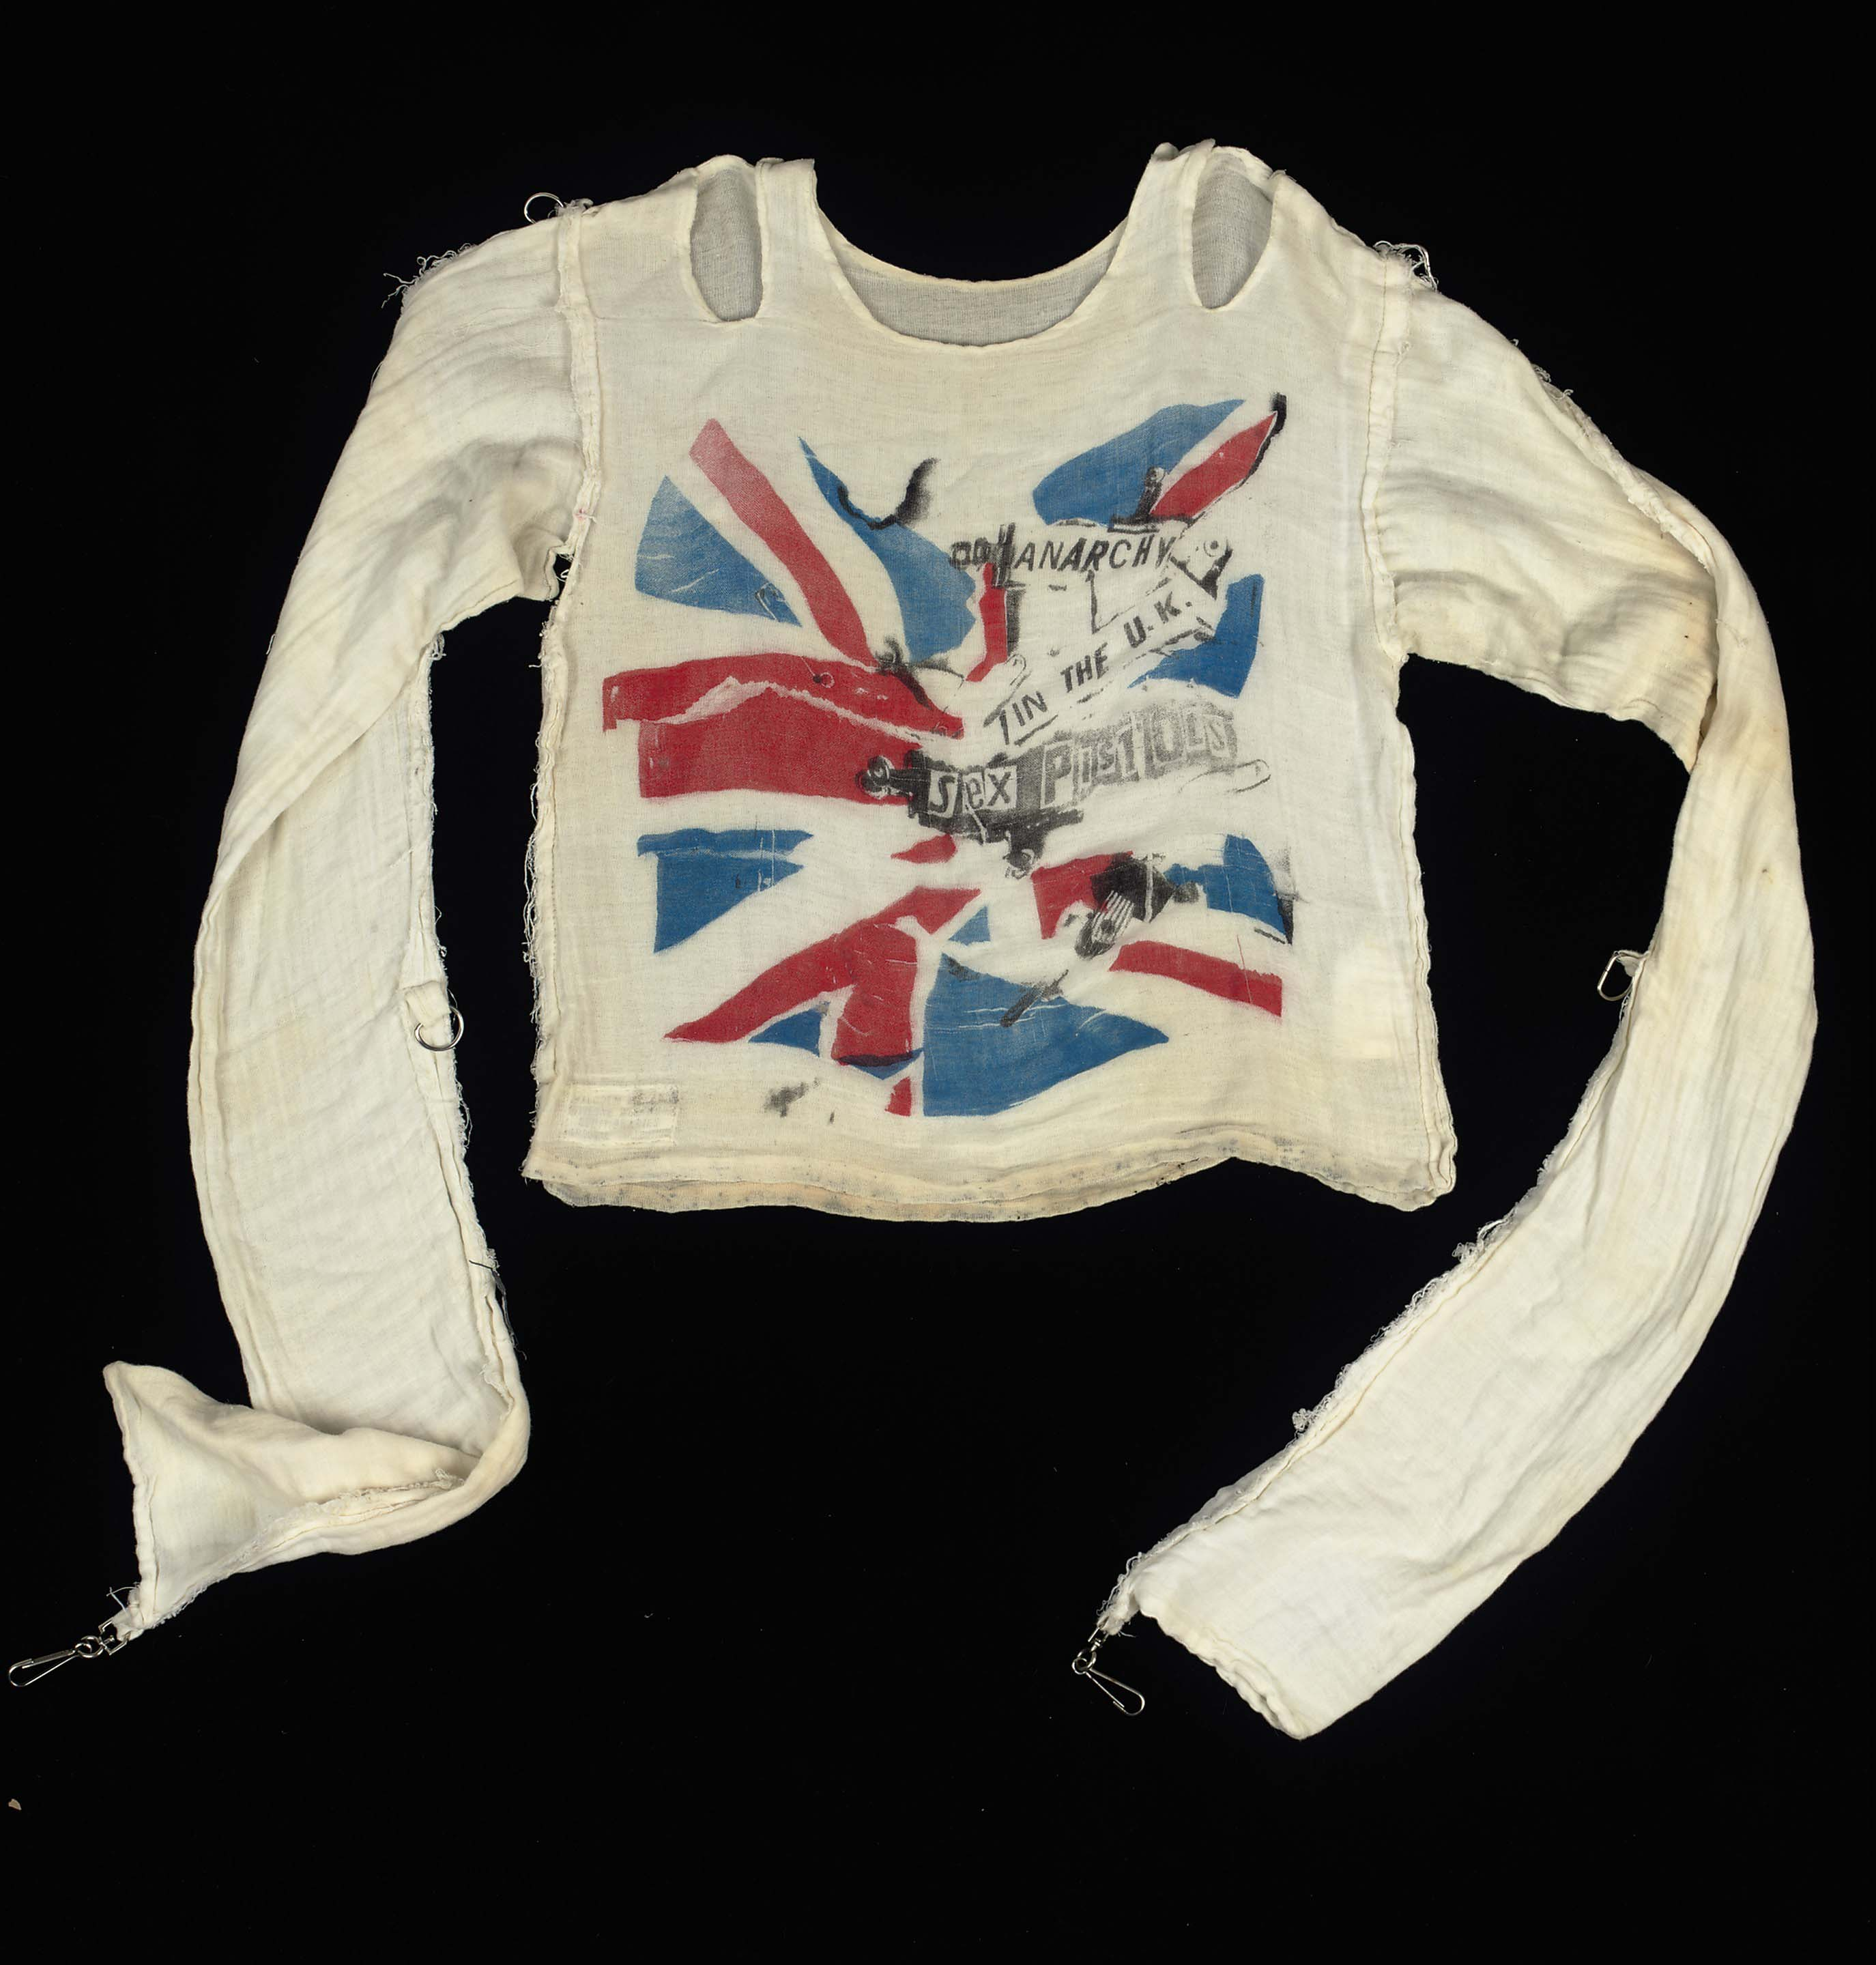 Anarchy in the Uk - Muslin 1977